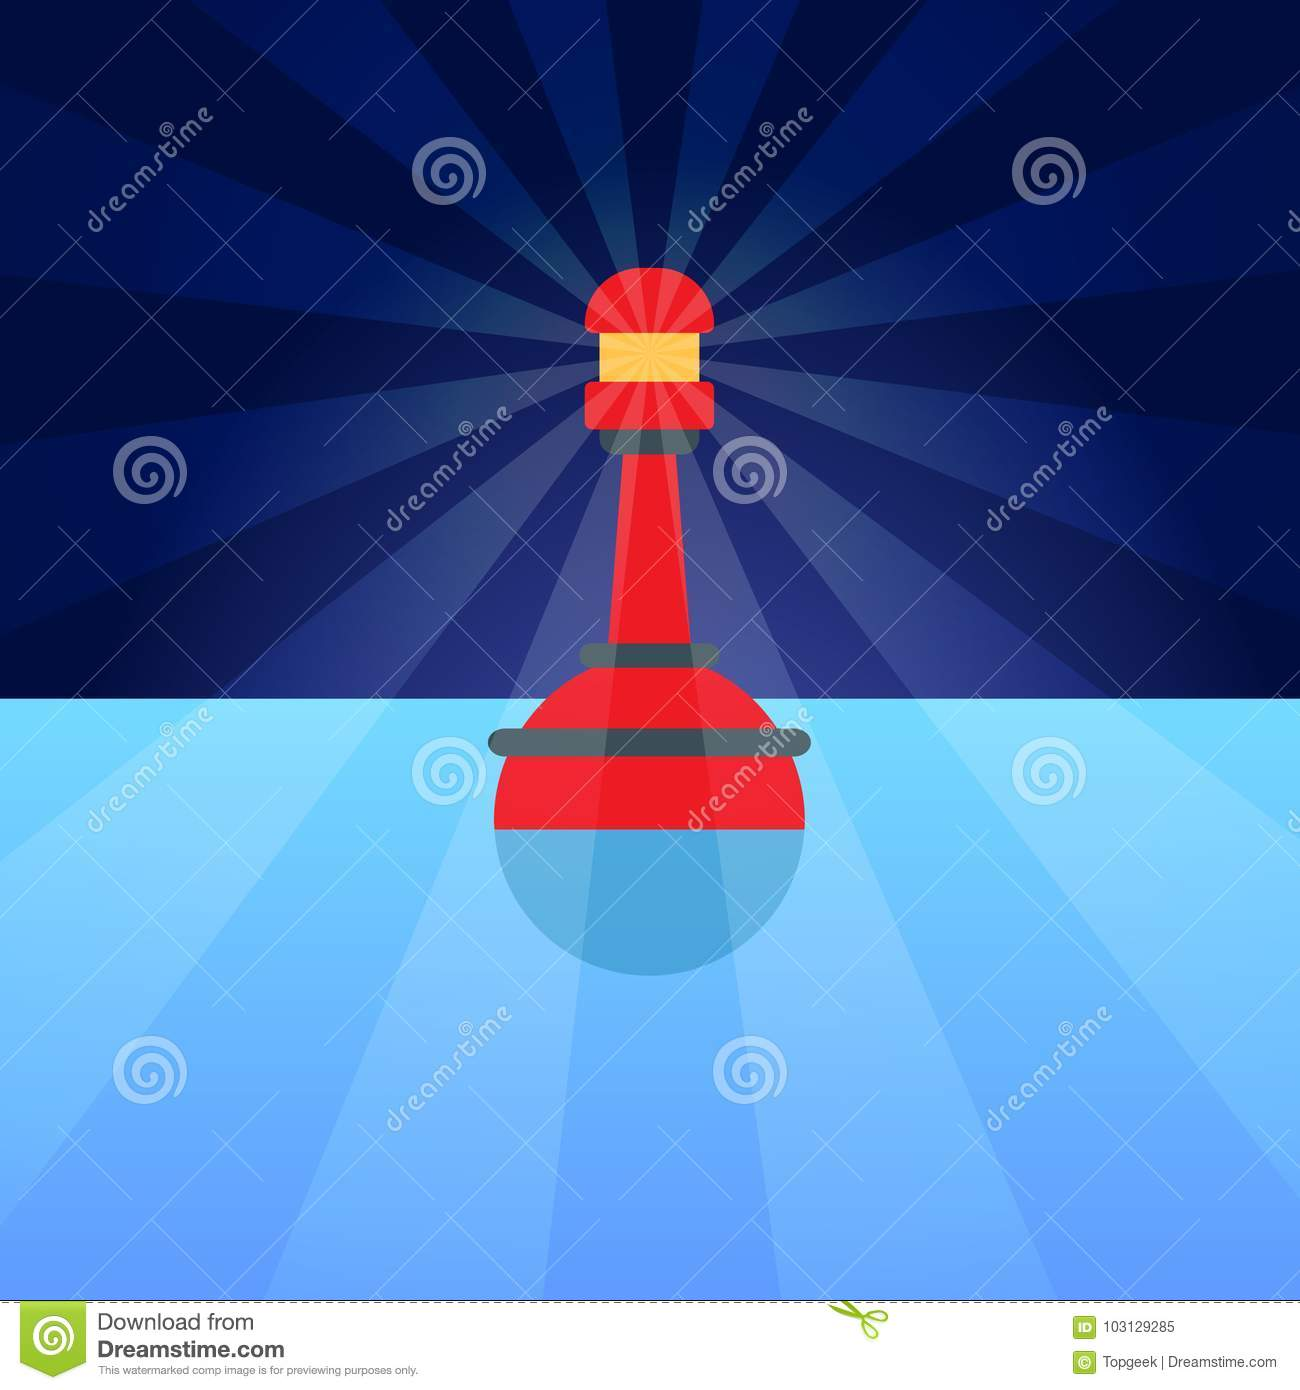 Red Plastic Buoy With Lighter In Blue Water Stock Vector ...